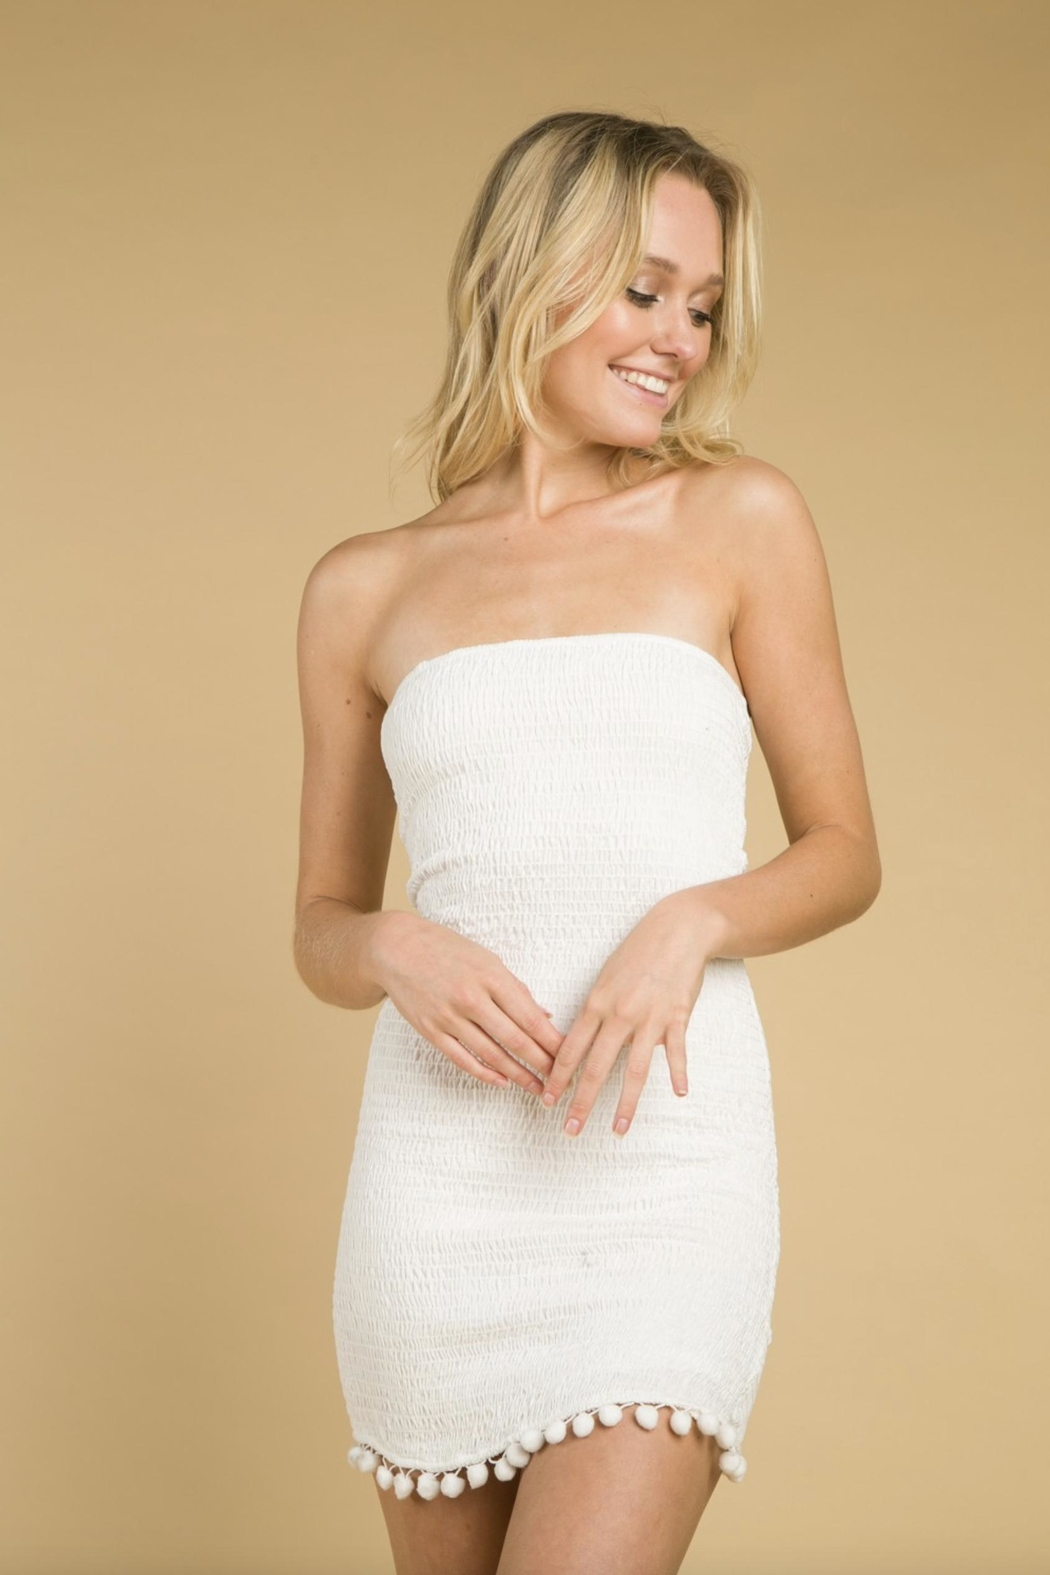 bf032e79d4e Wild Honey Smocking Tube-Top Dress from Florida by Apricot Lane St ...